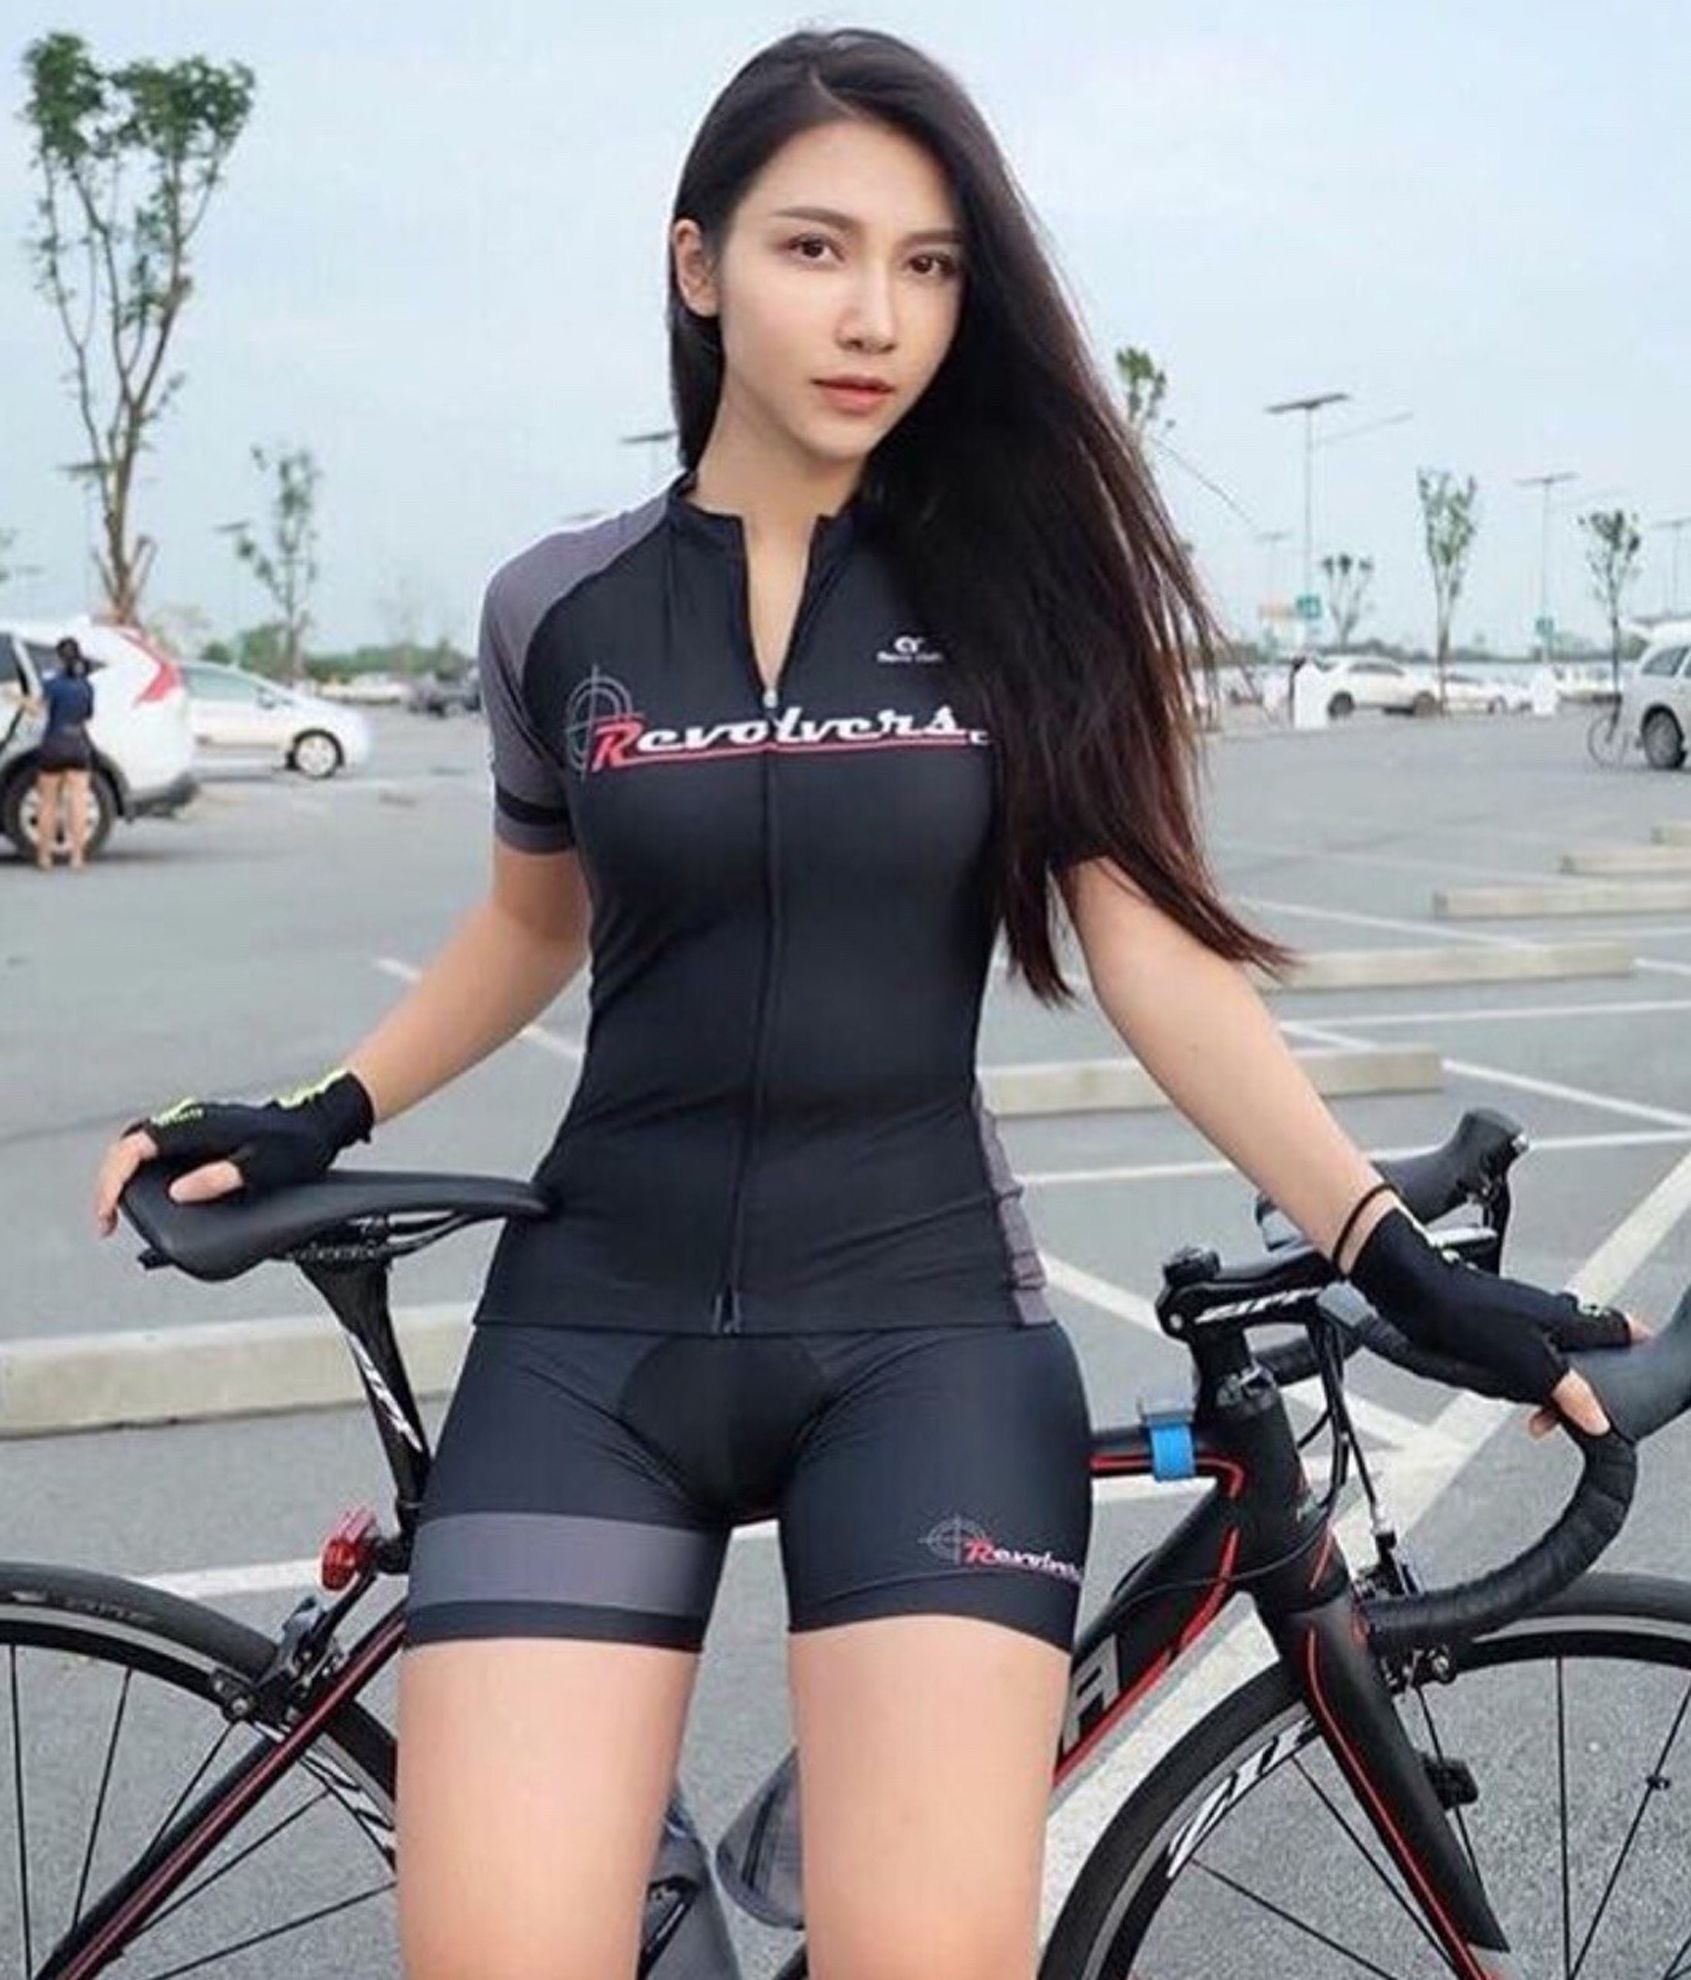 Fitness Woman On Bicycle Seat Fit Stock Photo